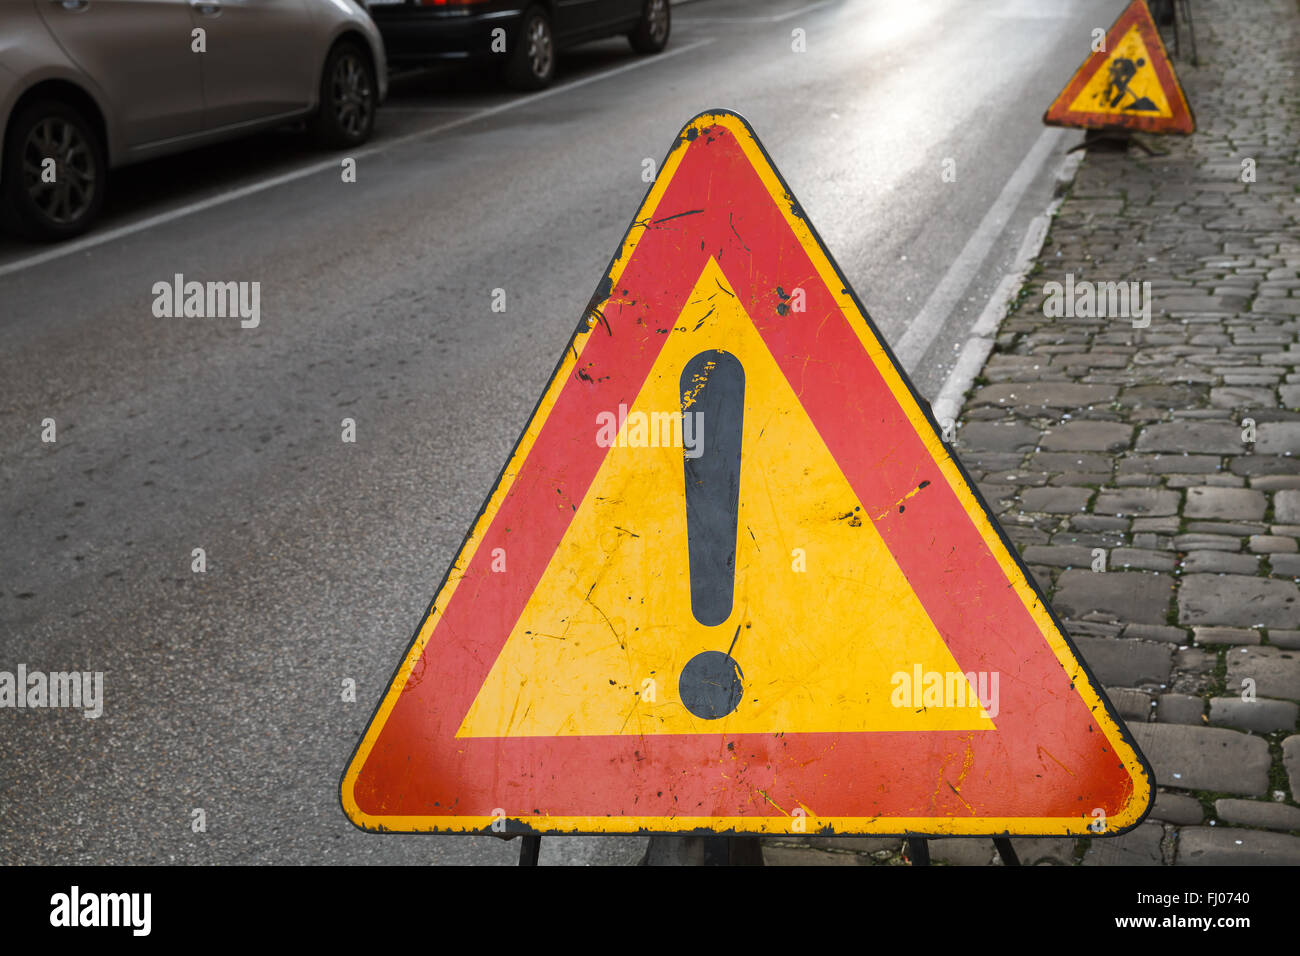 Bright red and yellow triangle warning road sign with exclamation mark on the roadside - Stock Image